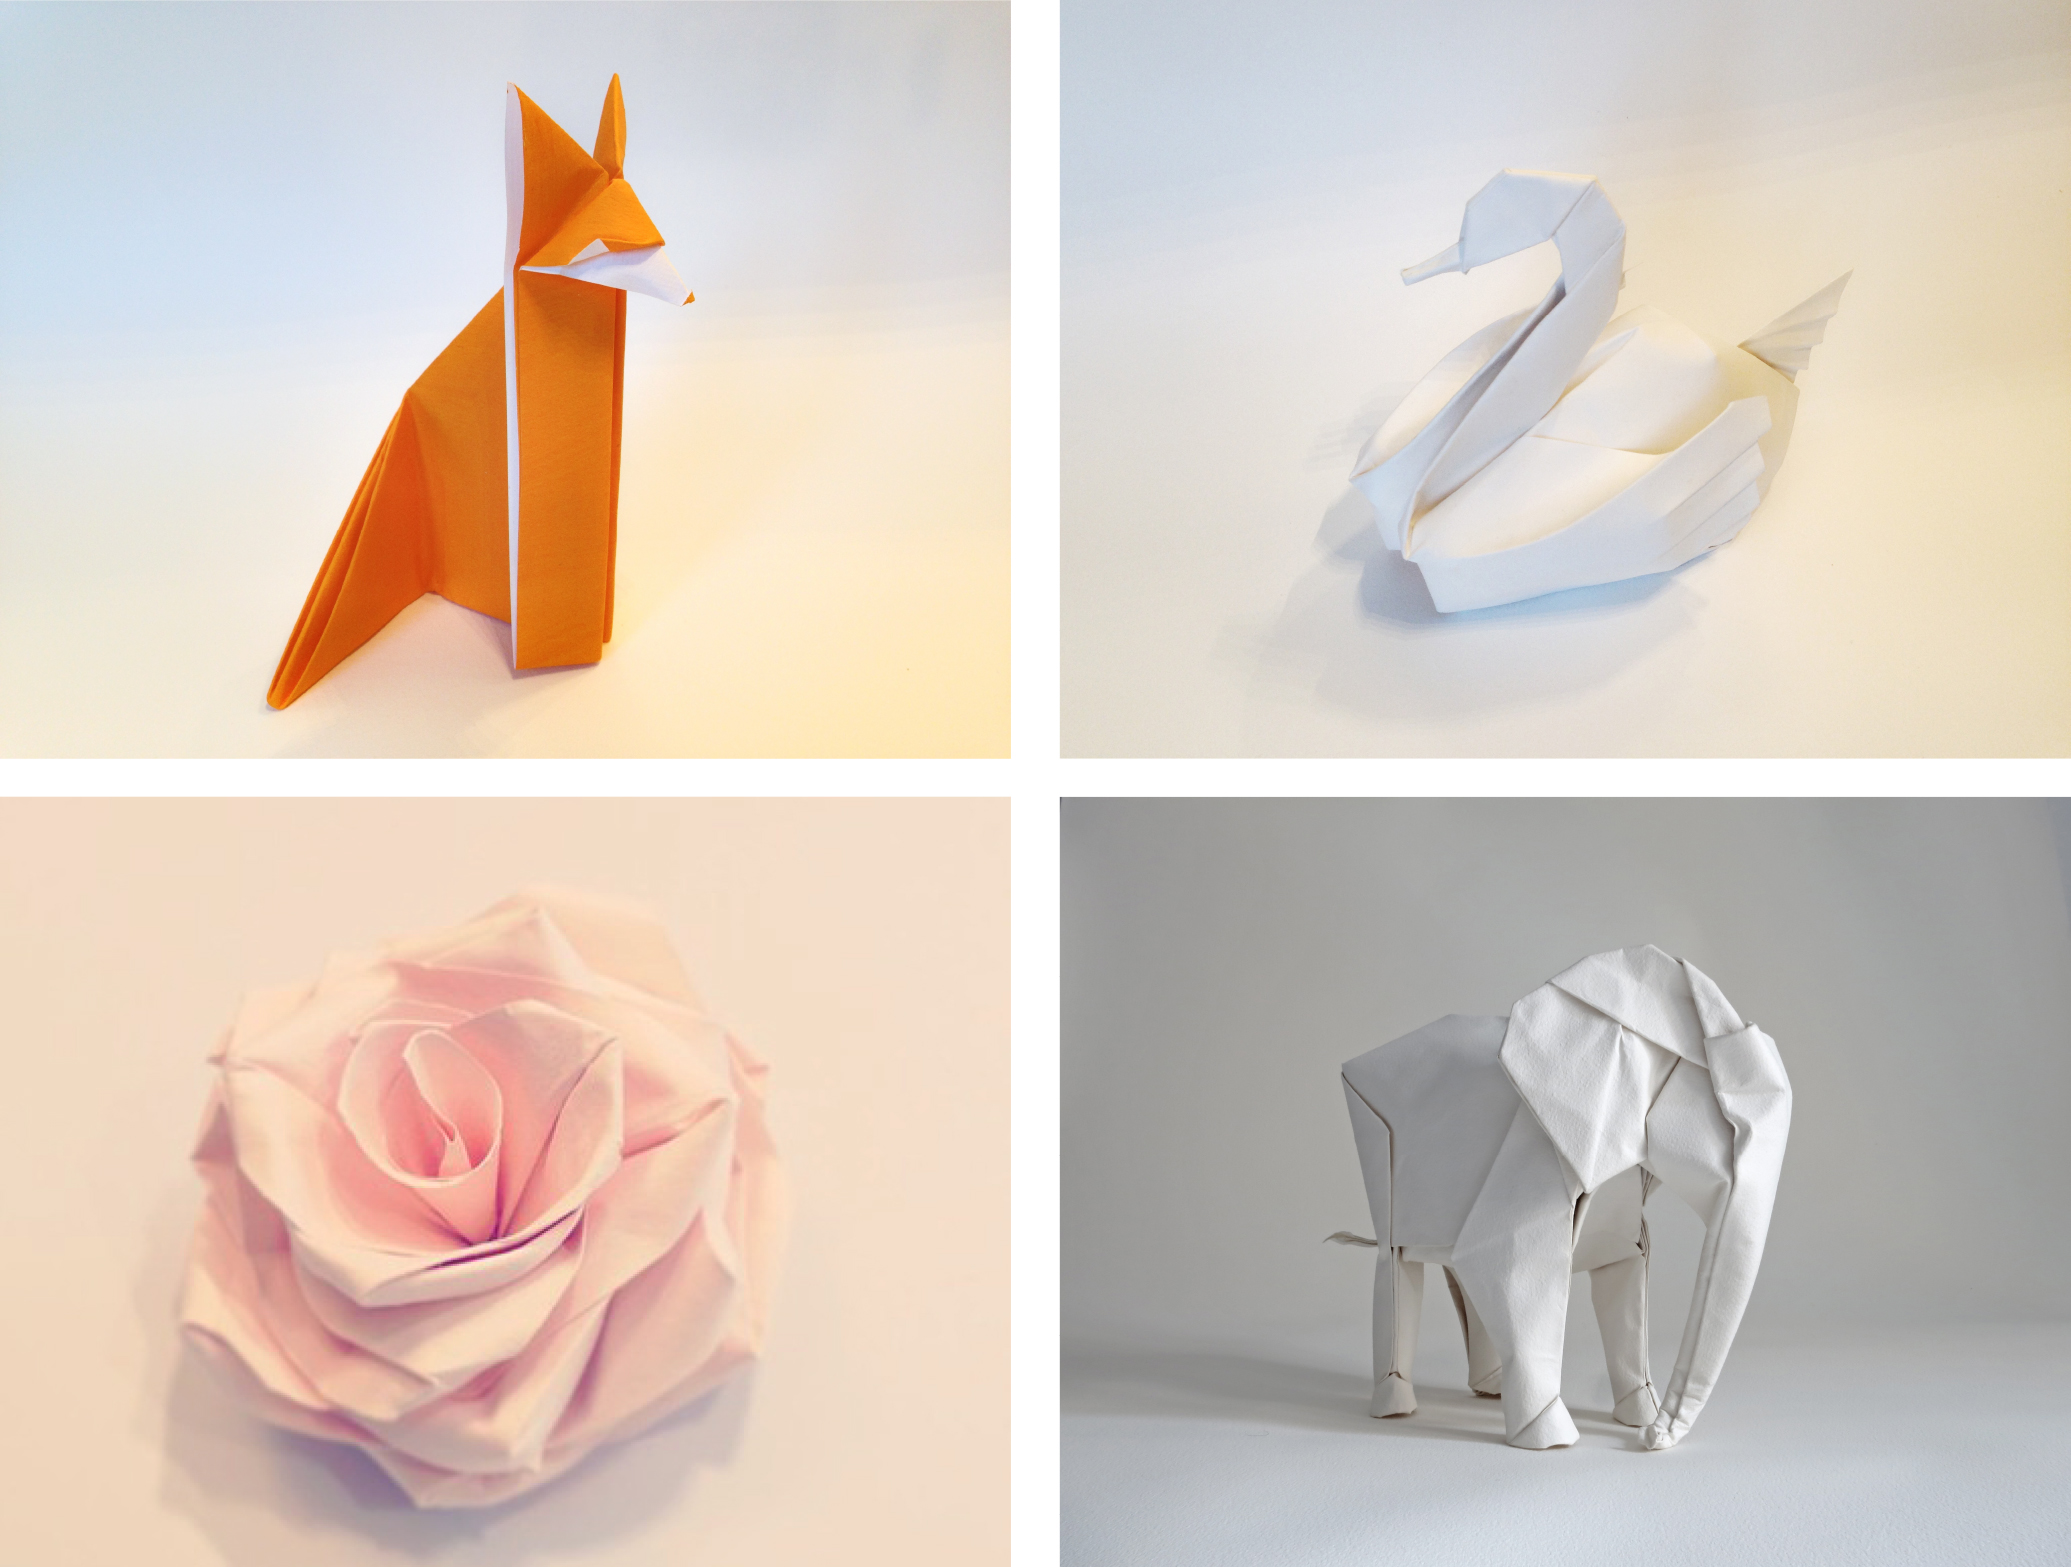 Toilet paper origami flower instructions akbaeenw toilet paper origami flower instructions thecheapjerseys Image collections